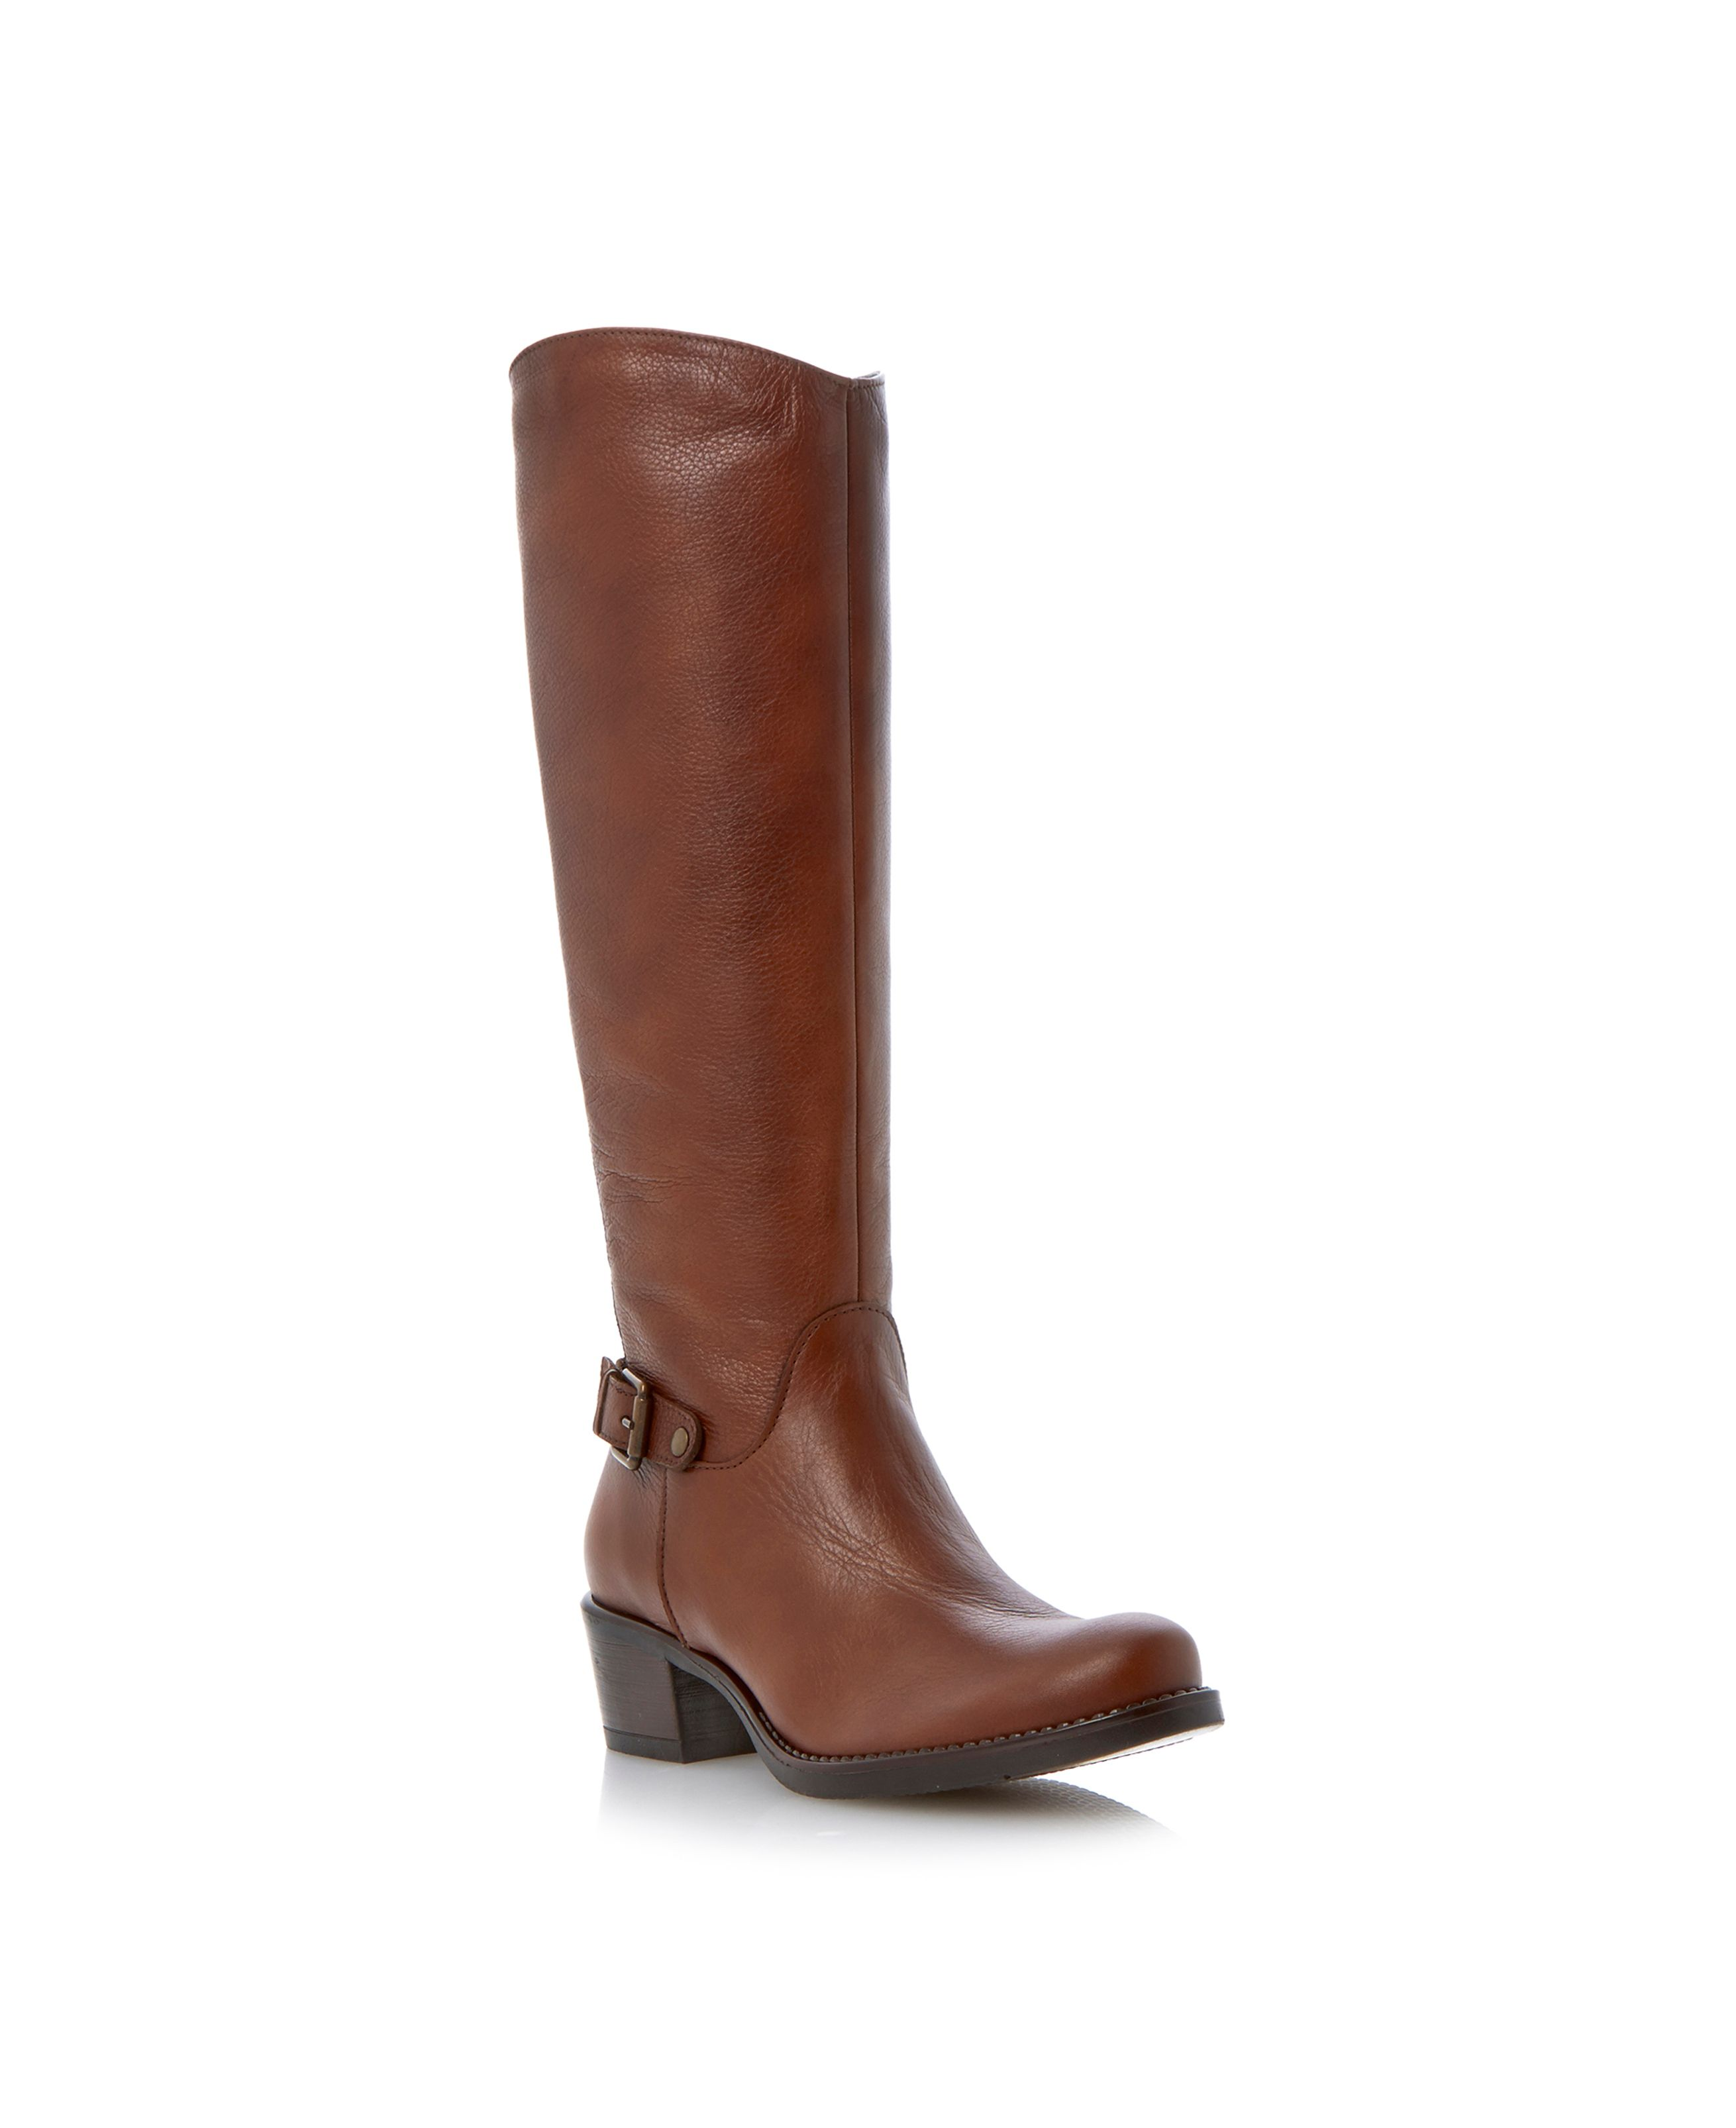 Tistry pull on riding boots